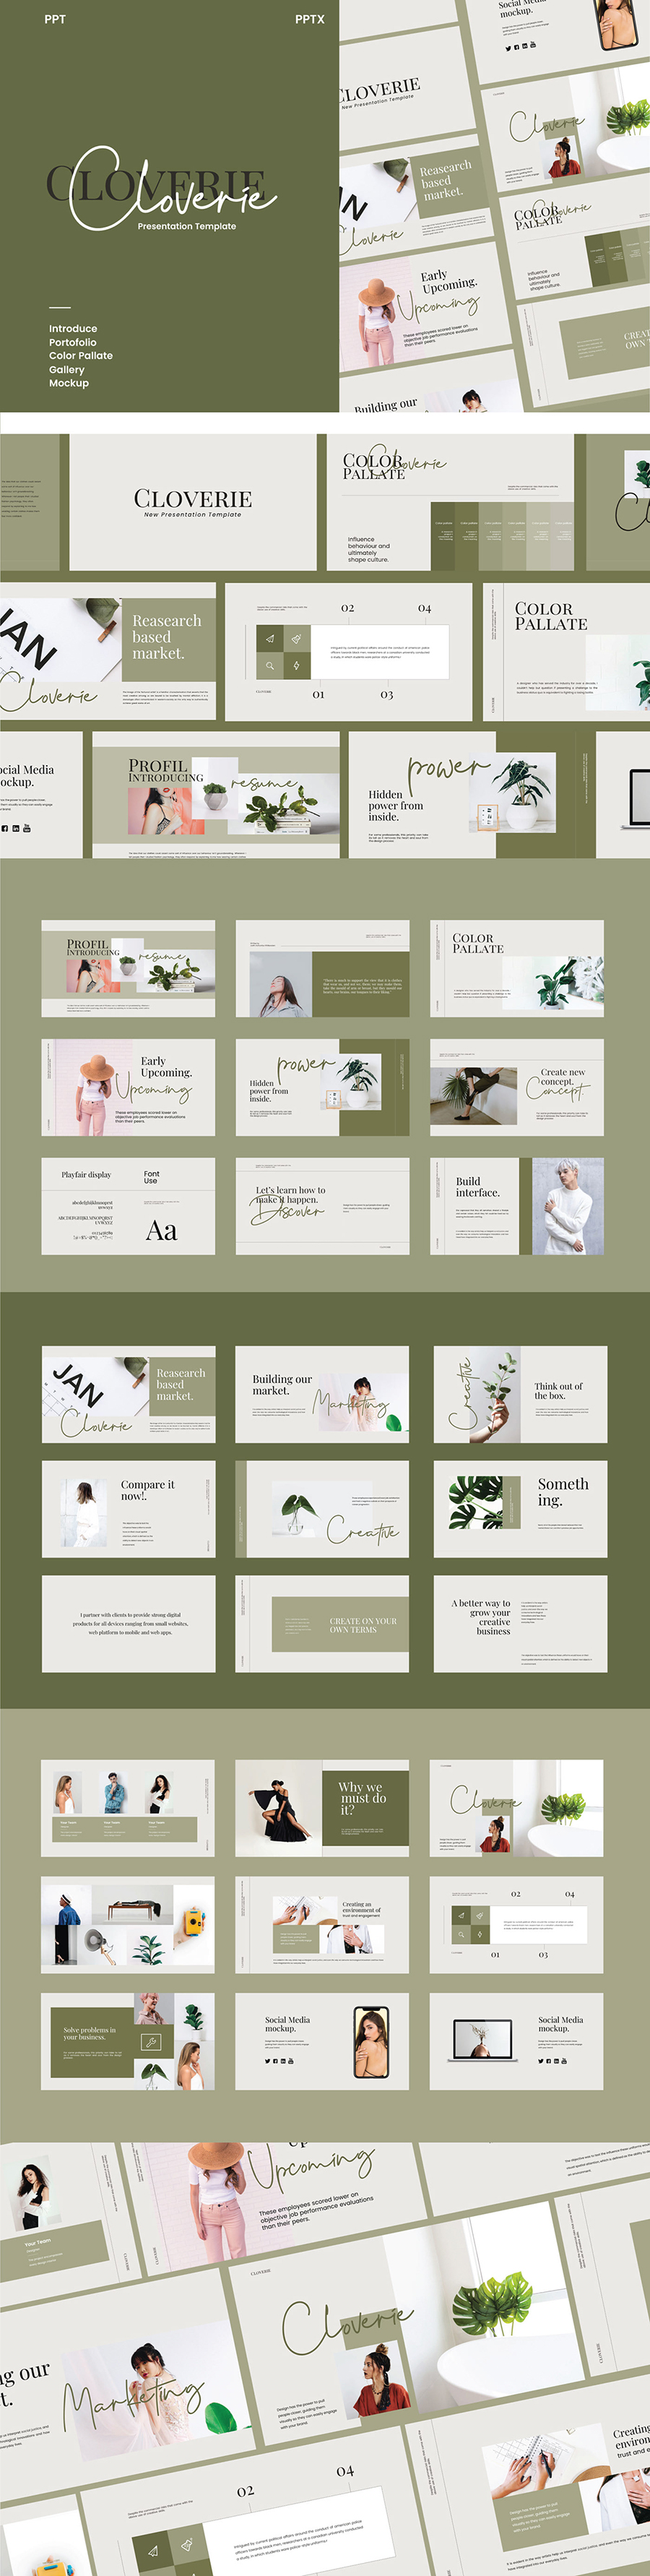 Cloverie PowerPoint Template